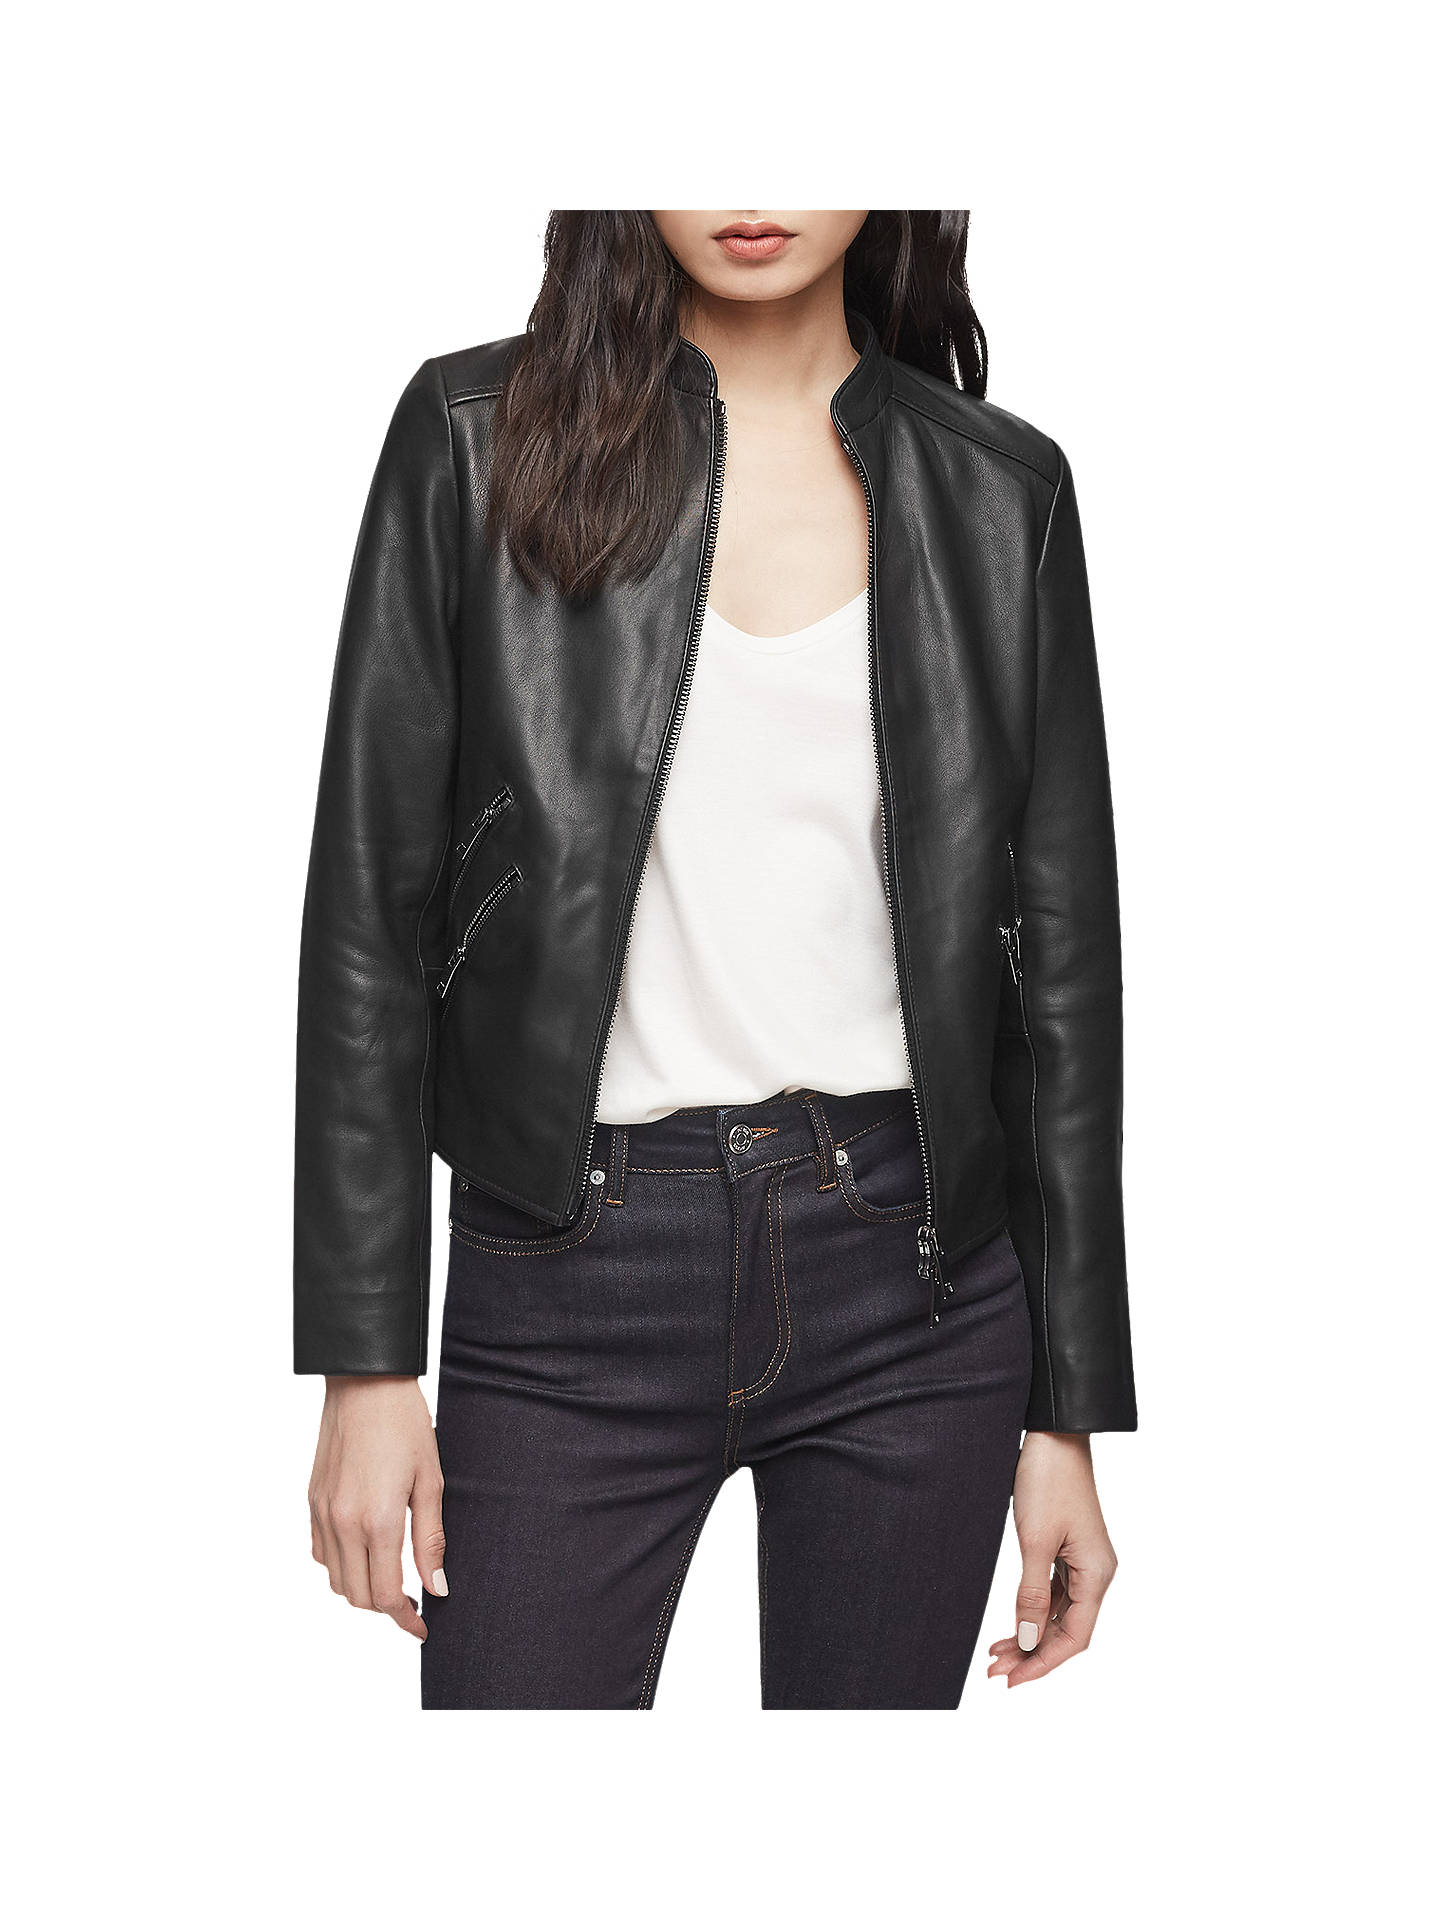 5bcbac7c5a Reiss Thea Jacket, Black at John Lewis & Partners